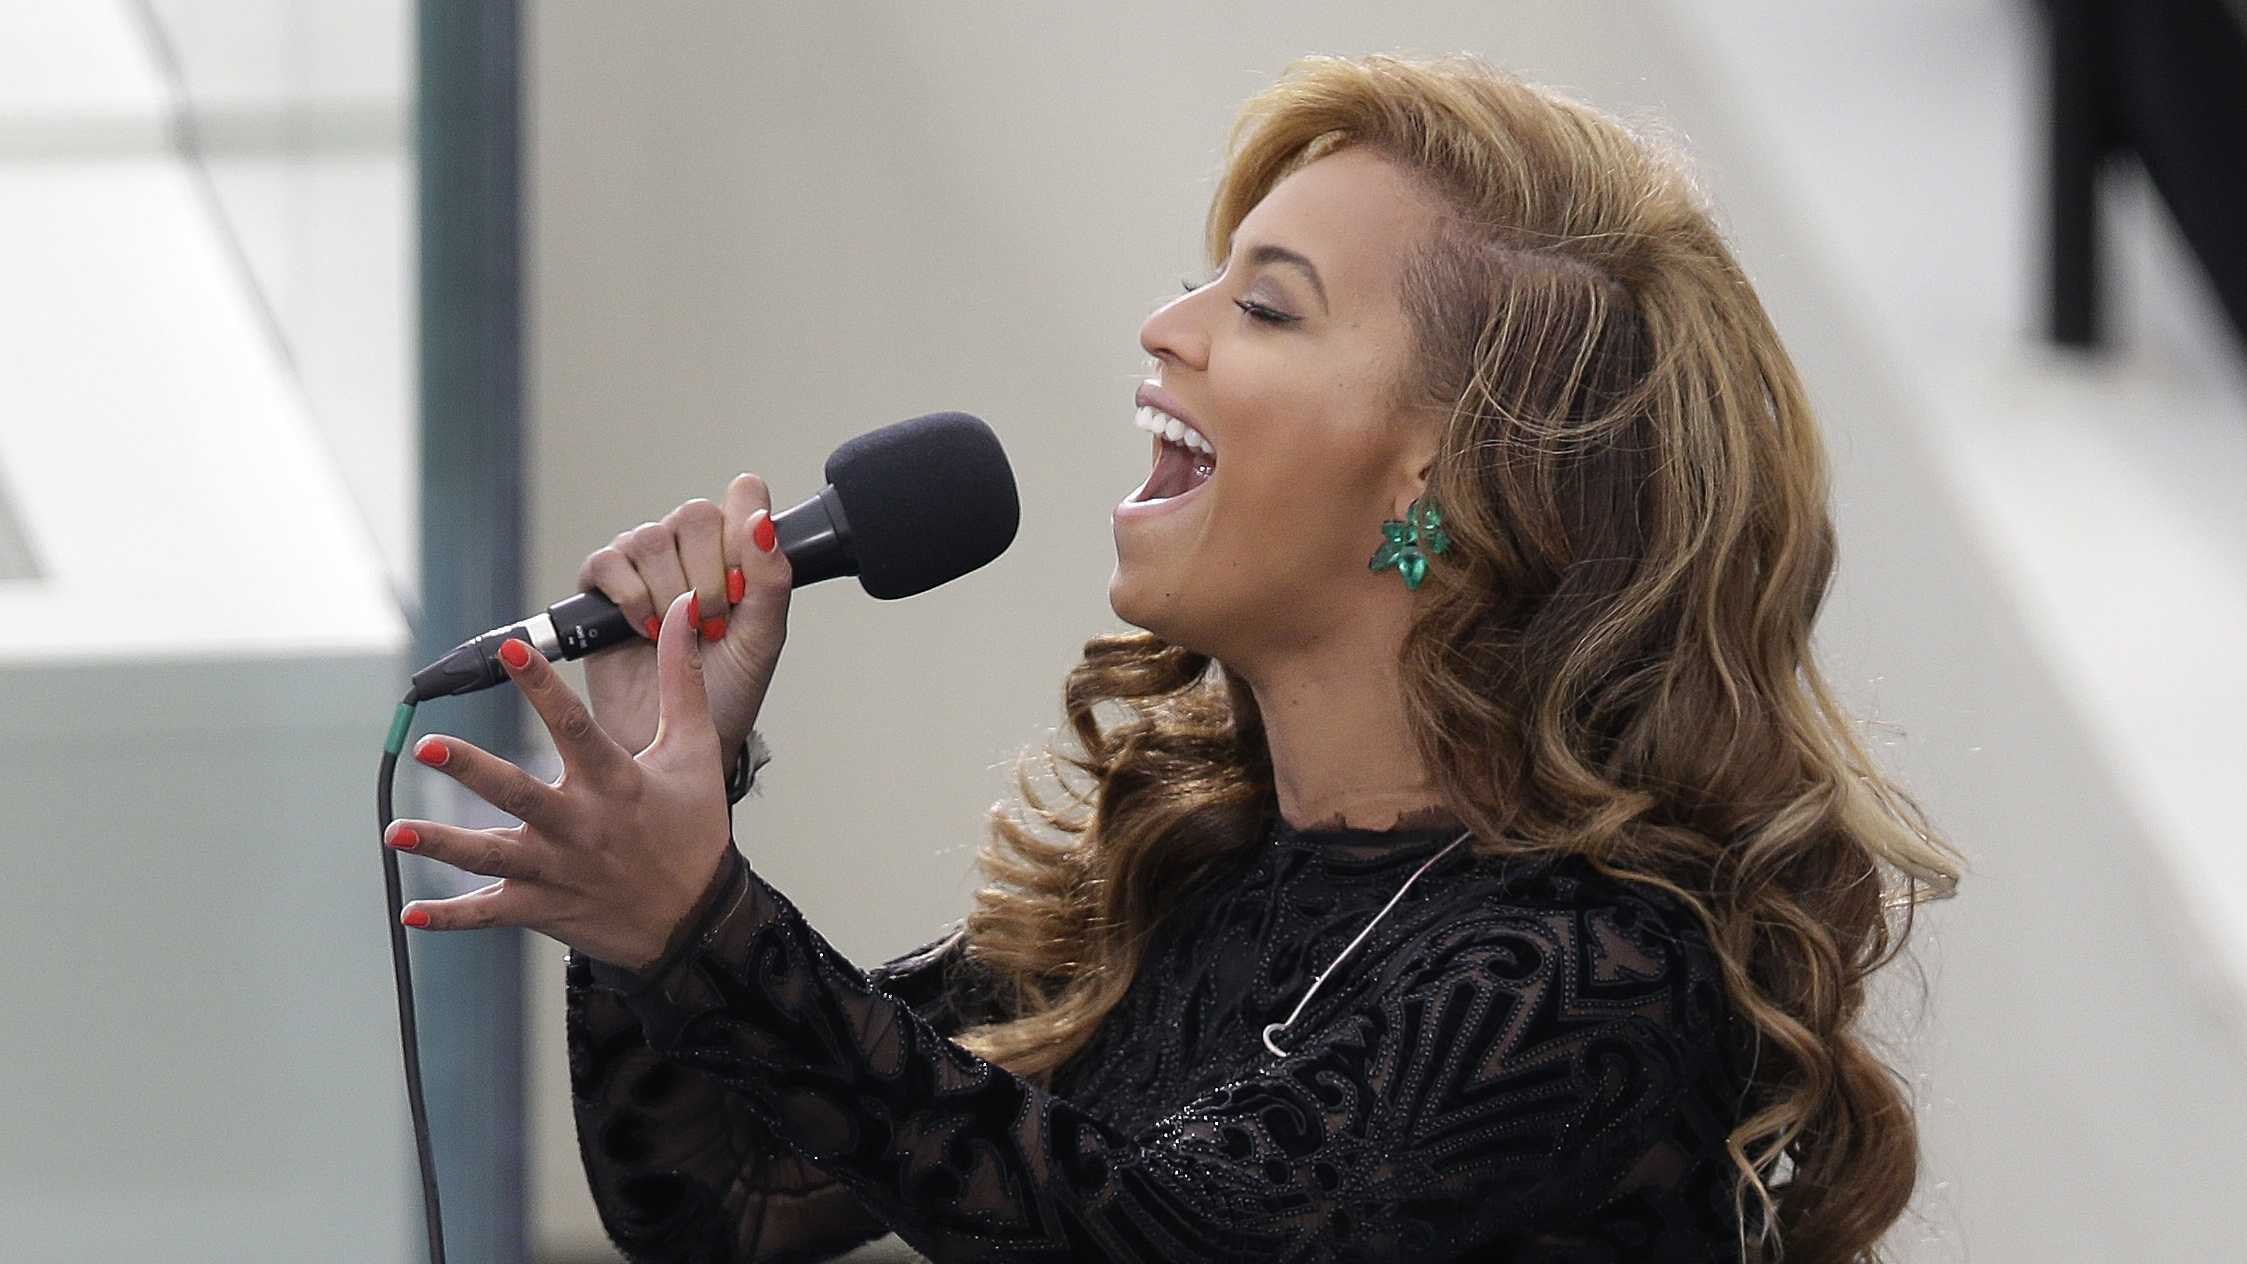 Beyonce sings the National Anthem at the ceremonial swearing-in for President Barack Obama at the U.S. Capitol during the 57th Presidential Inauguration in Washington, Monday, Jan. 21, 2013.